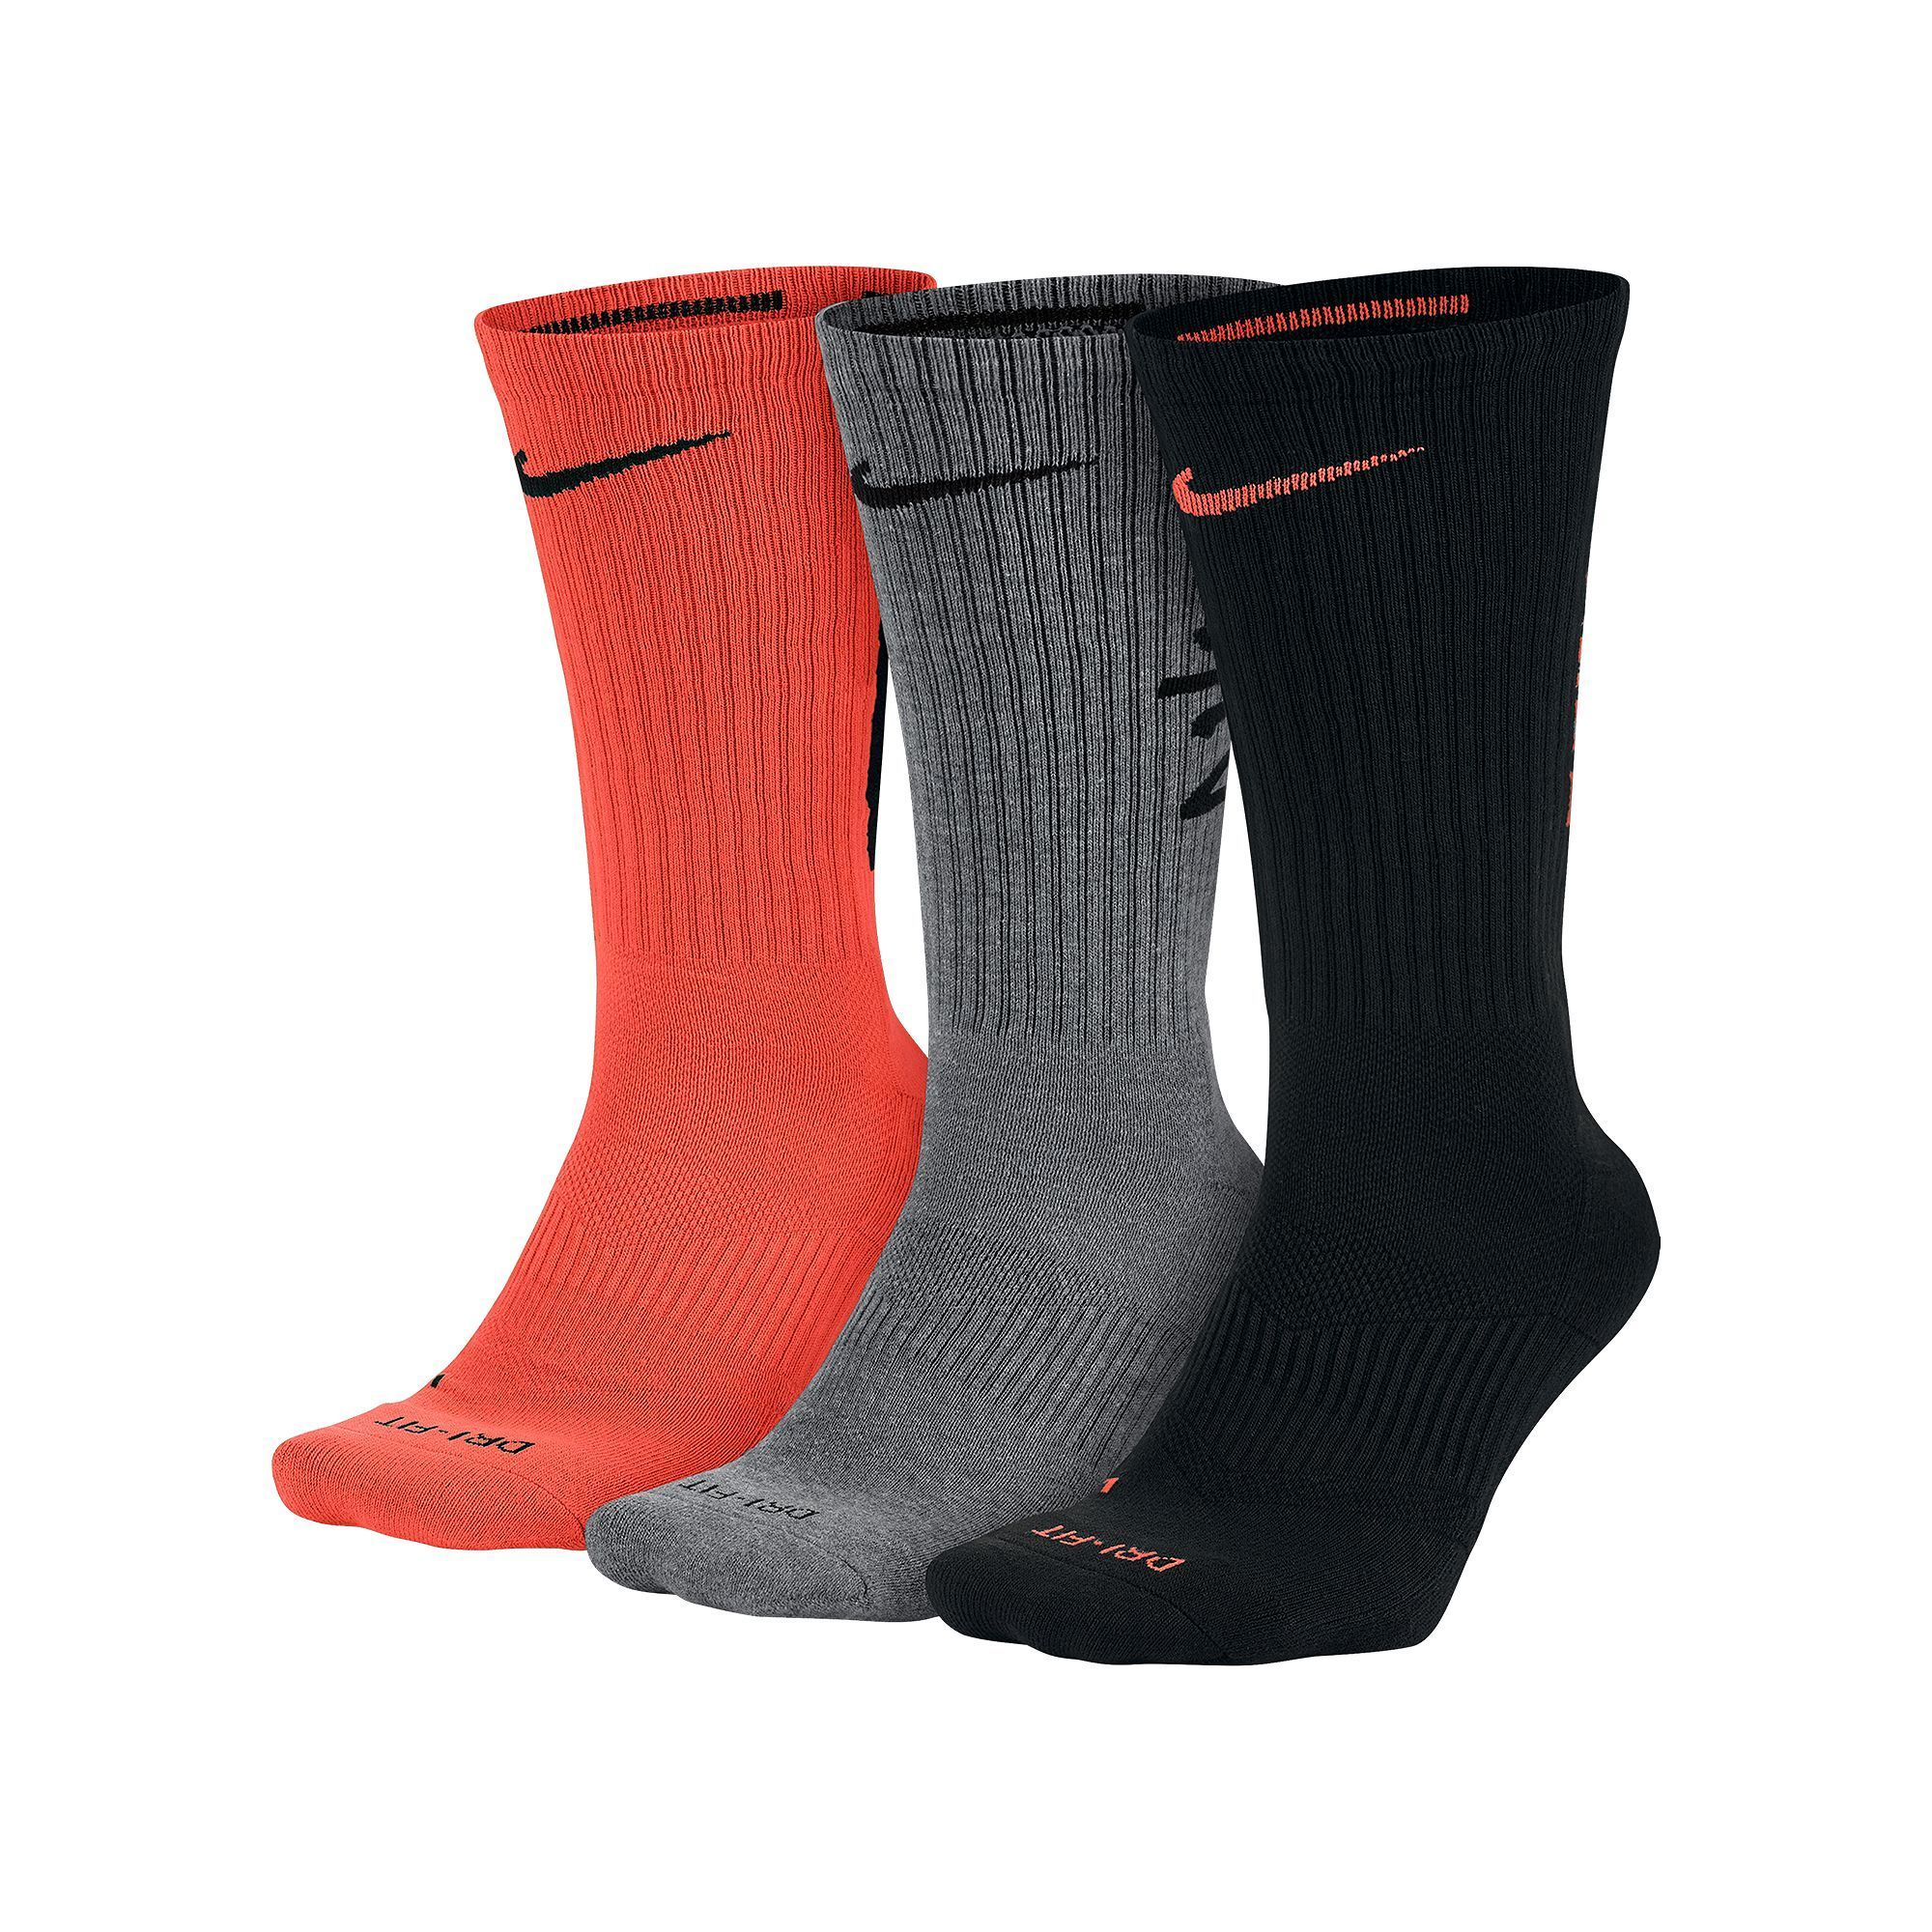 90a91ae7c1bae Men's Nike 3-pack Dri-Fit Fly V4 Crew Socks | Products | Crew socks ...